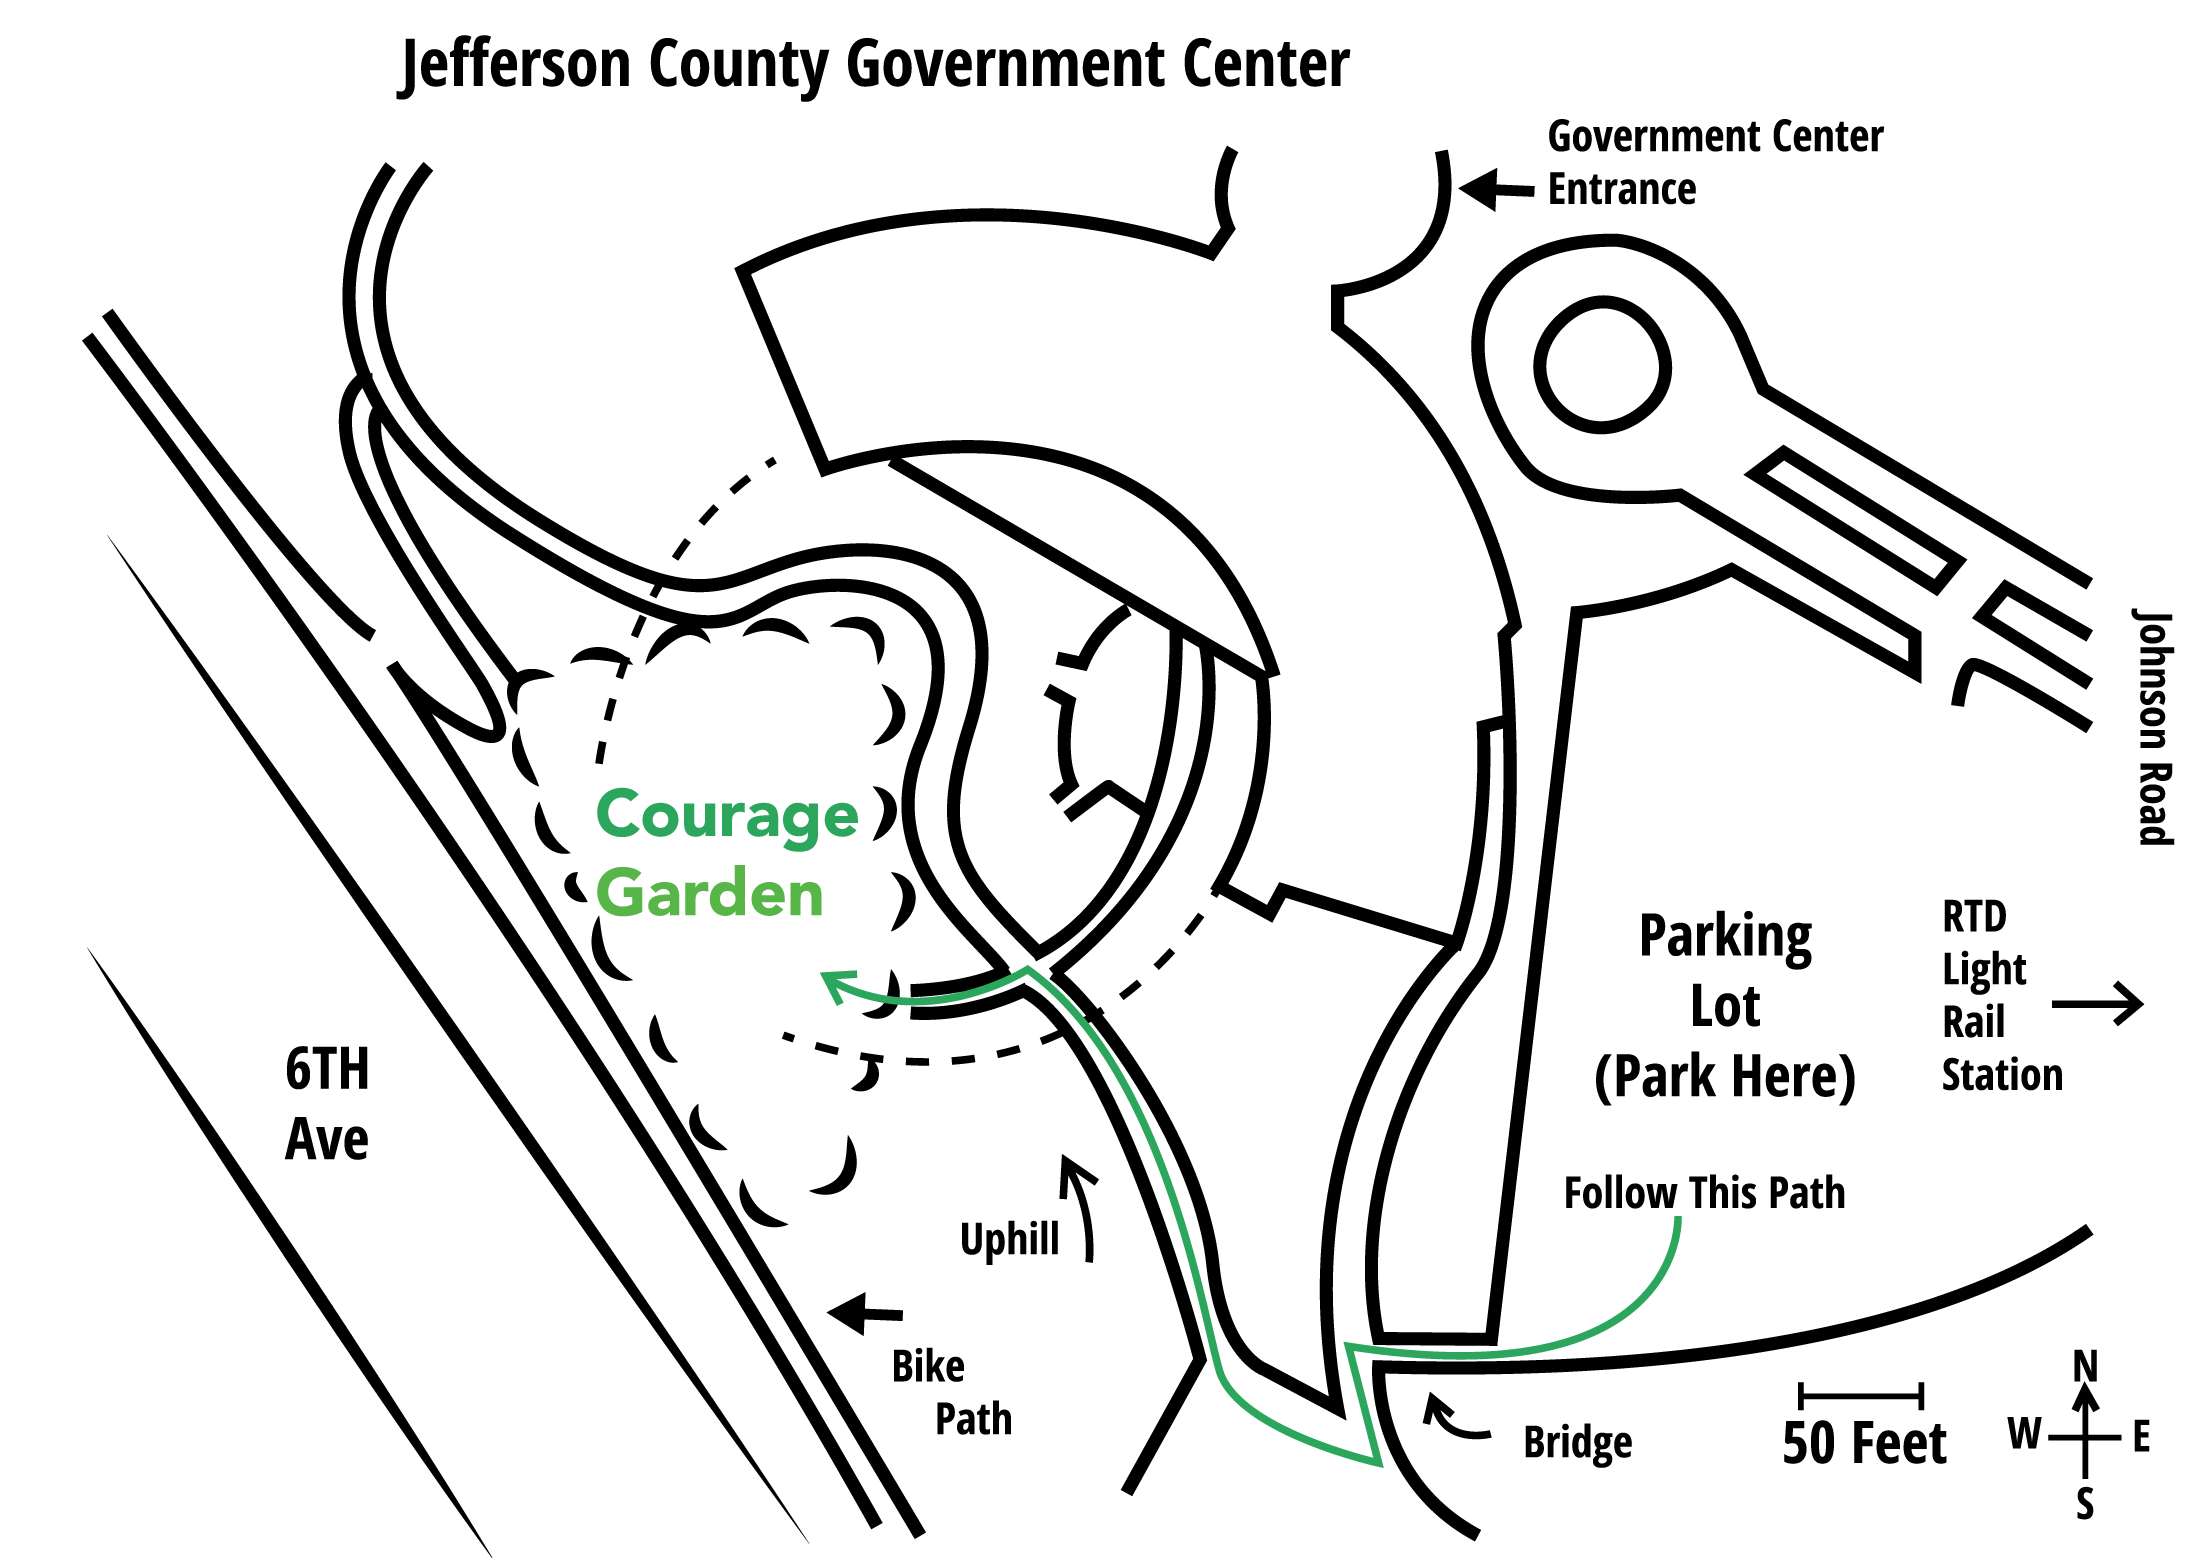 Wide angle map of the Jefferson County Courage Garden